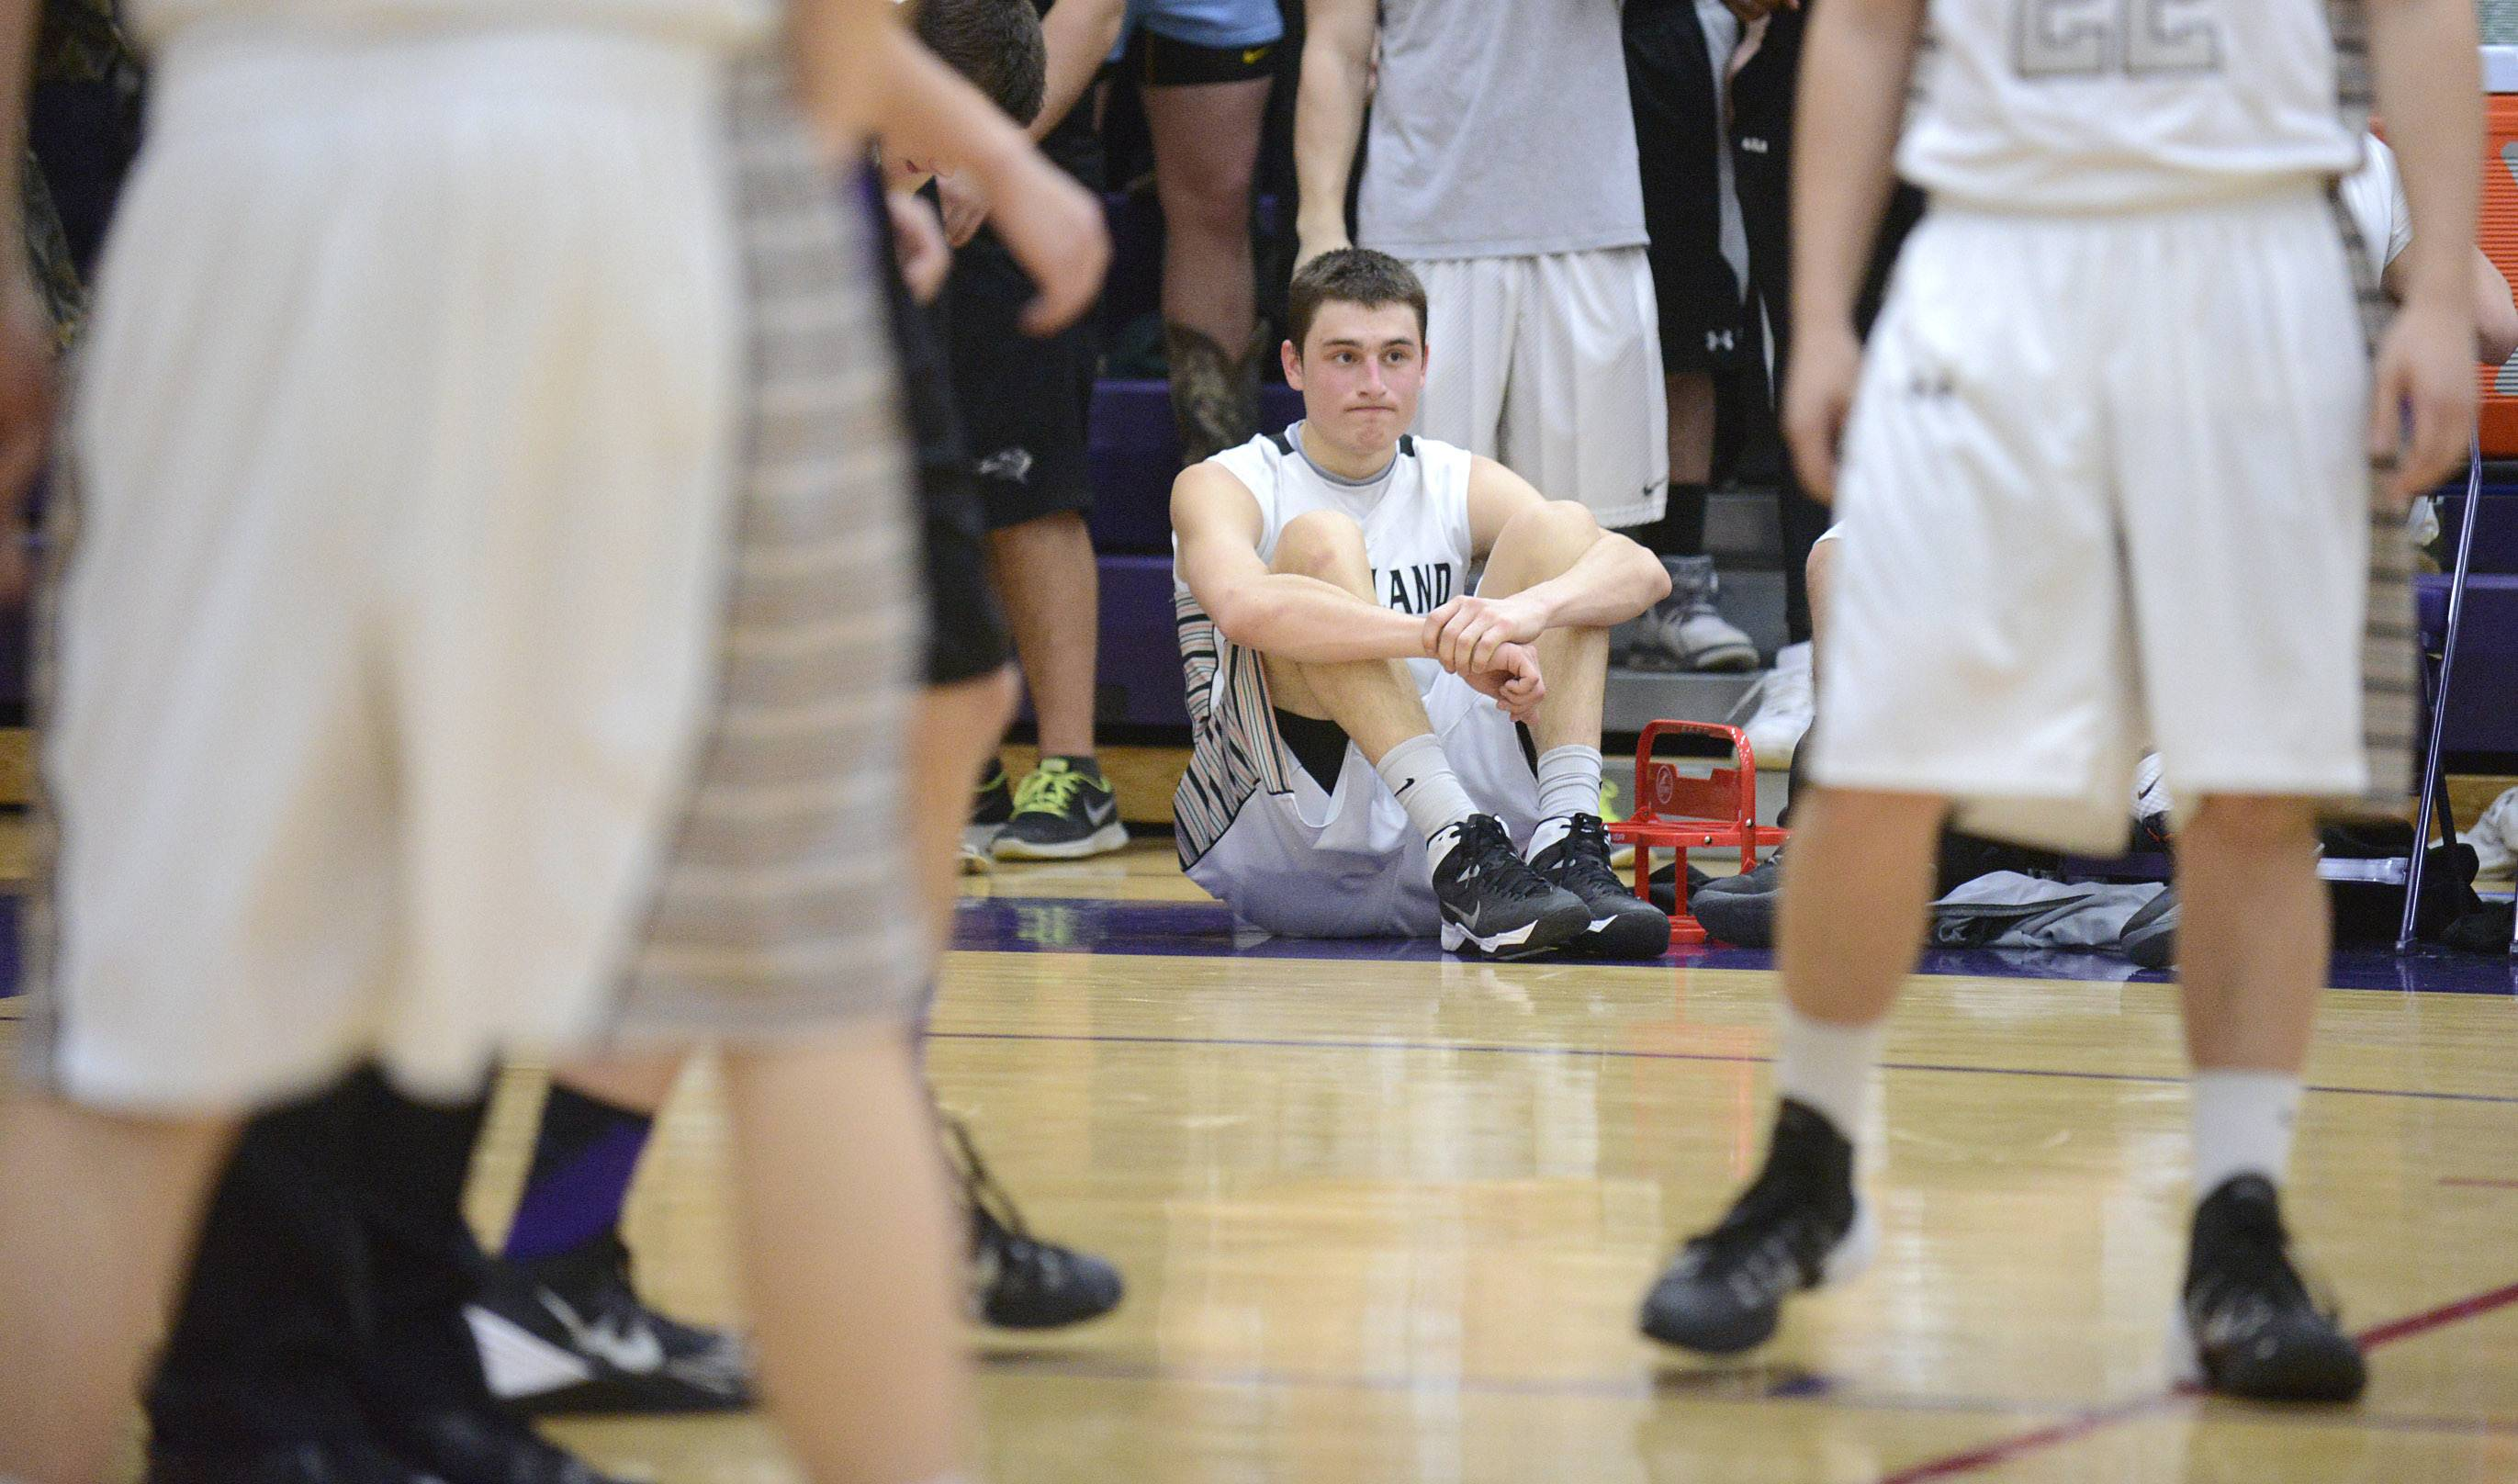 Kaneland's John Pruett sits at the end of the bench watching the final seconds of the game.